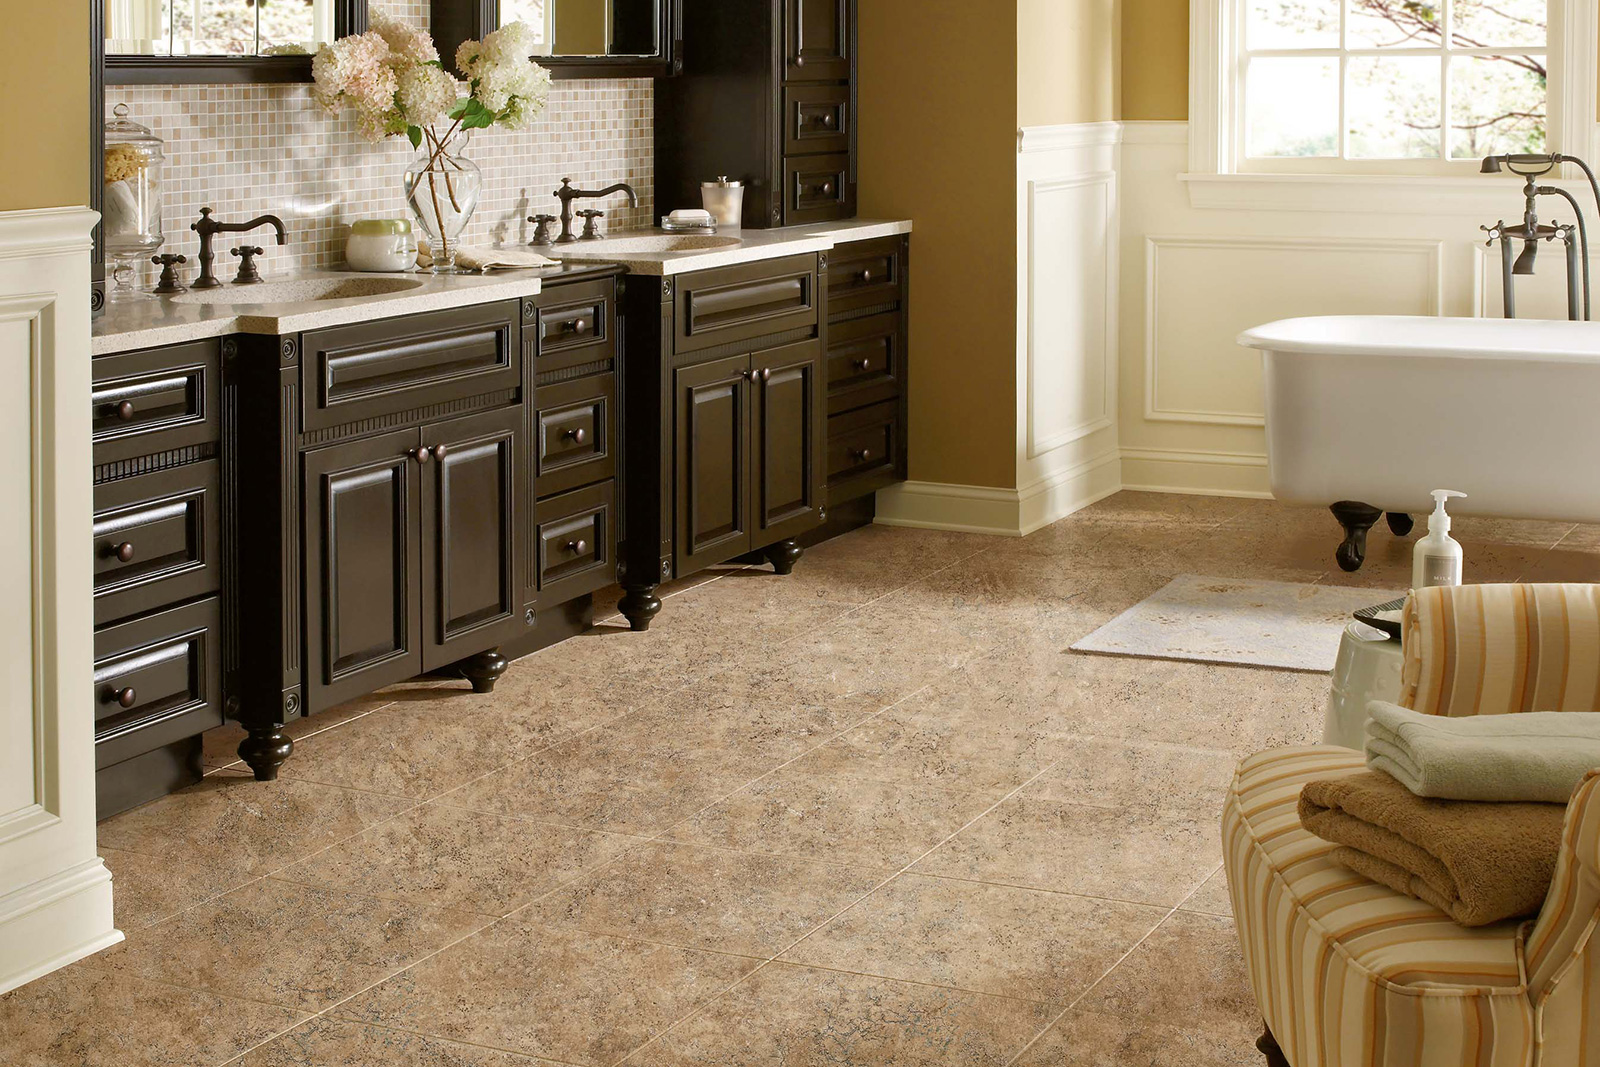 Bathroom floor vinyl tiles - Bathroom Floor Vinyl Tiles 32